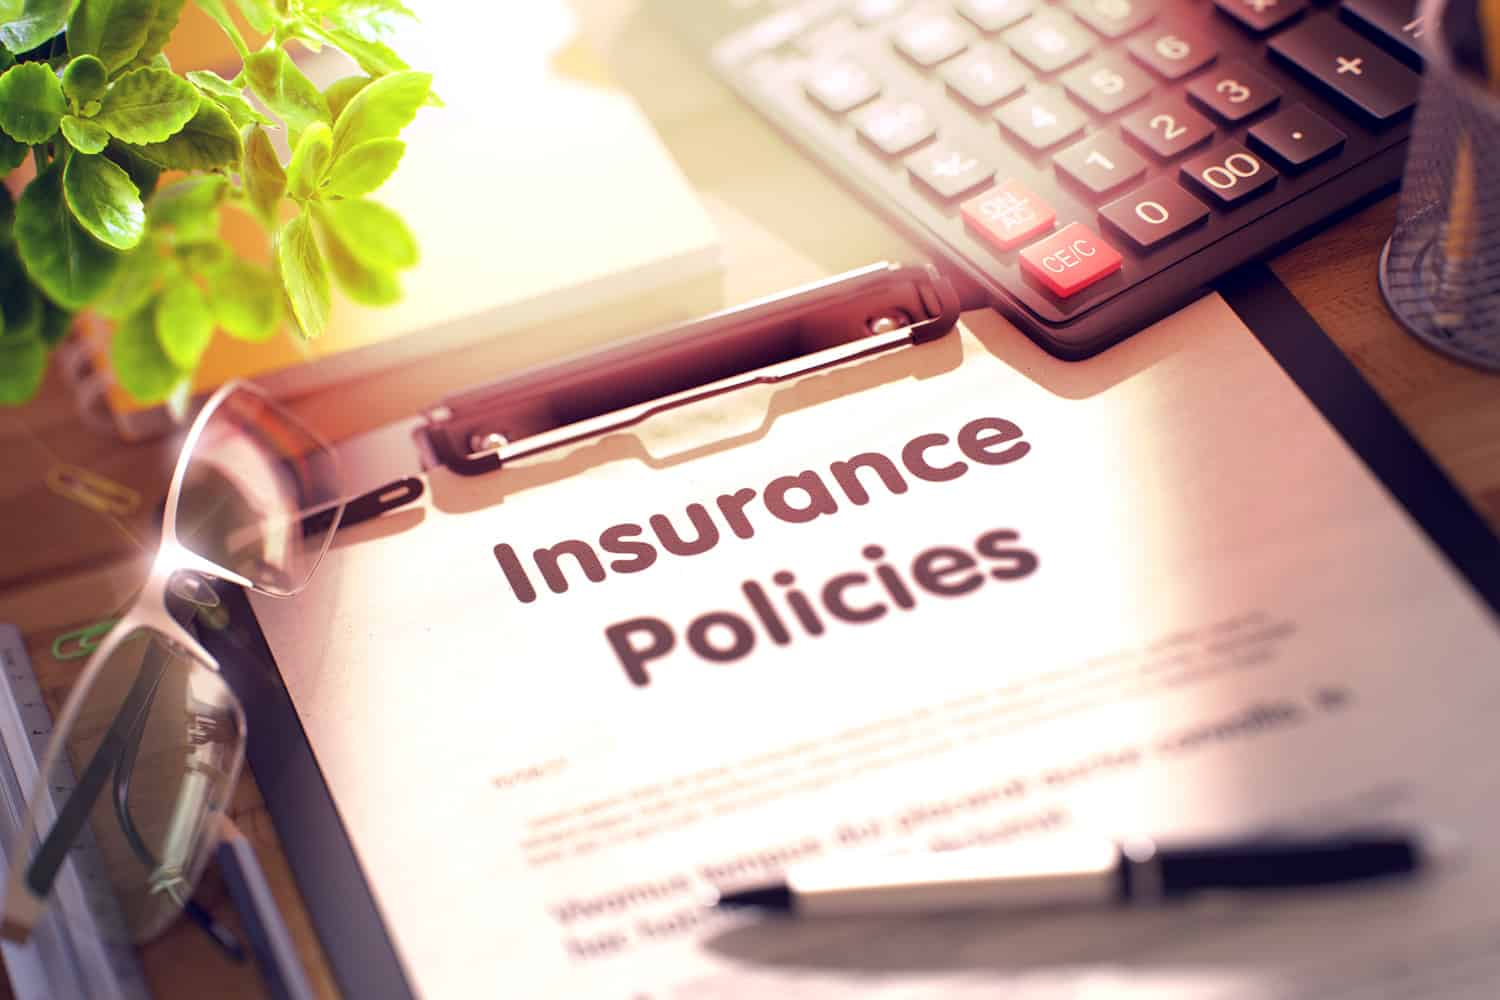 Self storage insurance policies